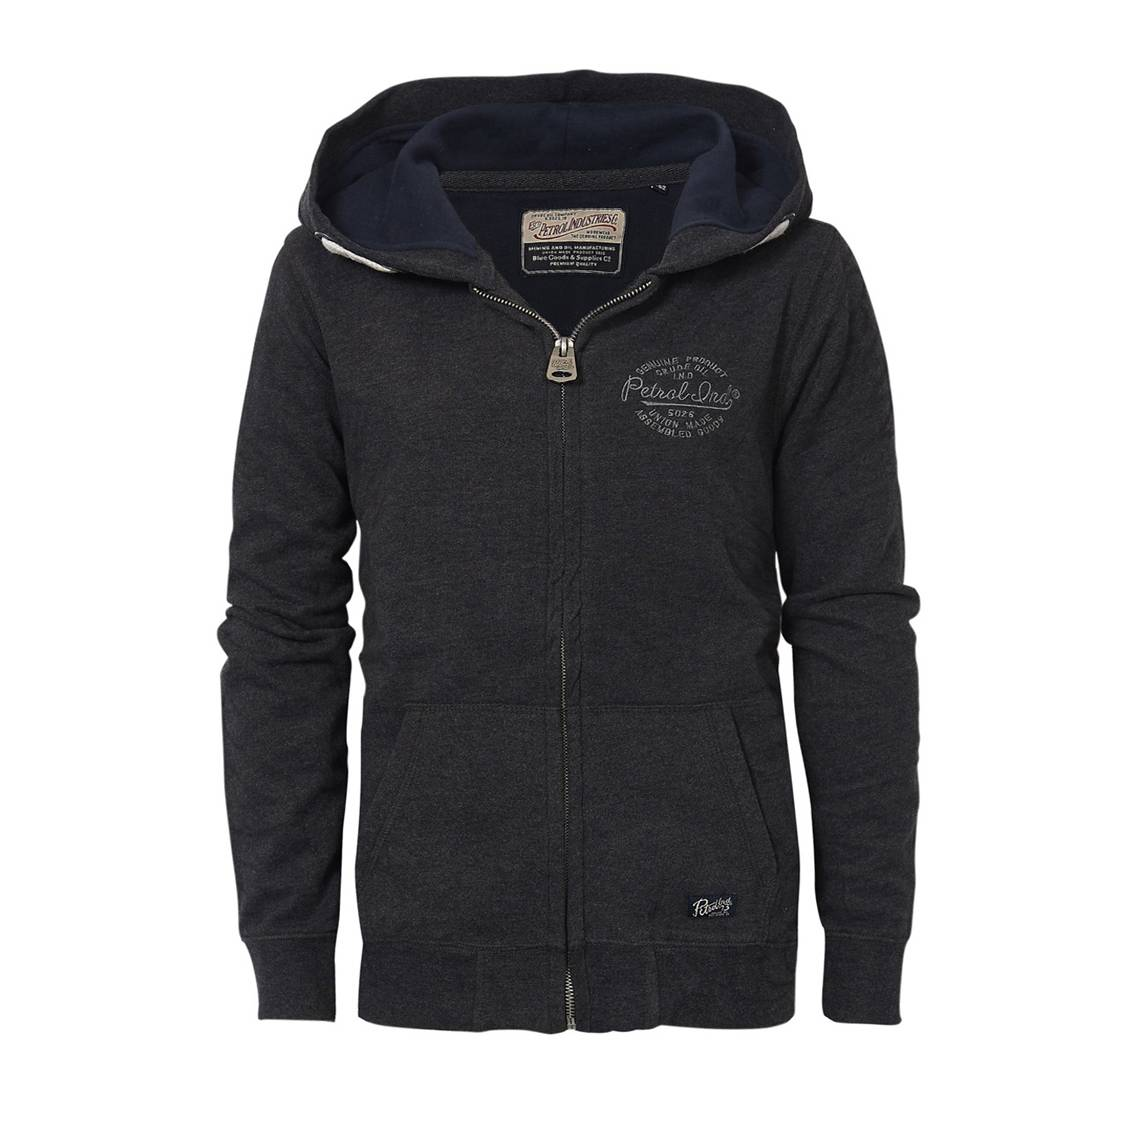 Sweat zippé à capuche Petrol industries Junior en molleton gris anthracite